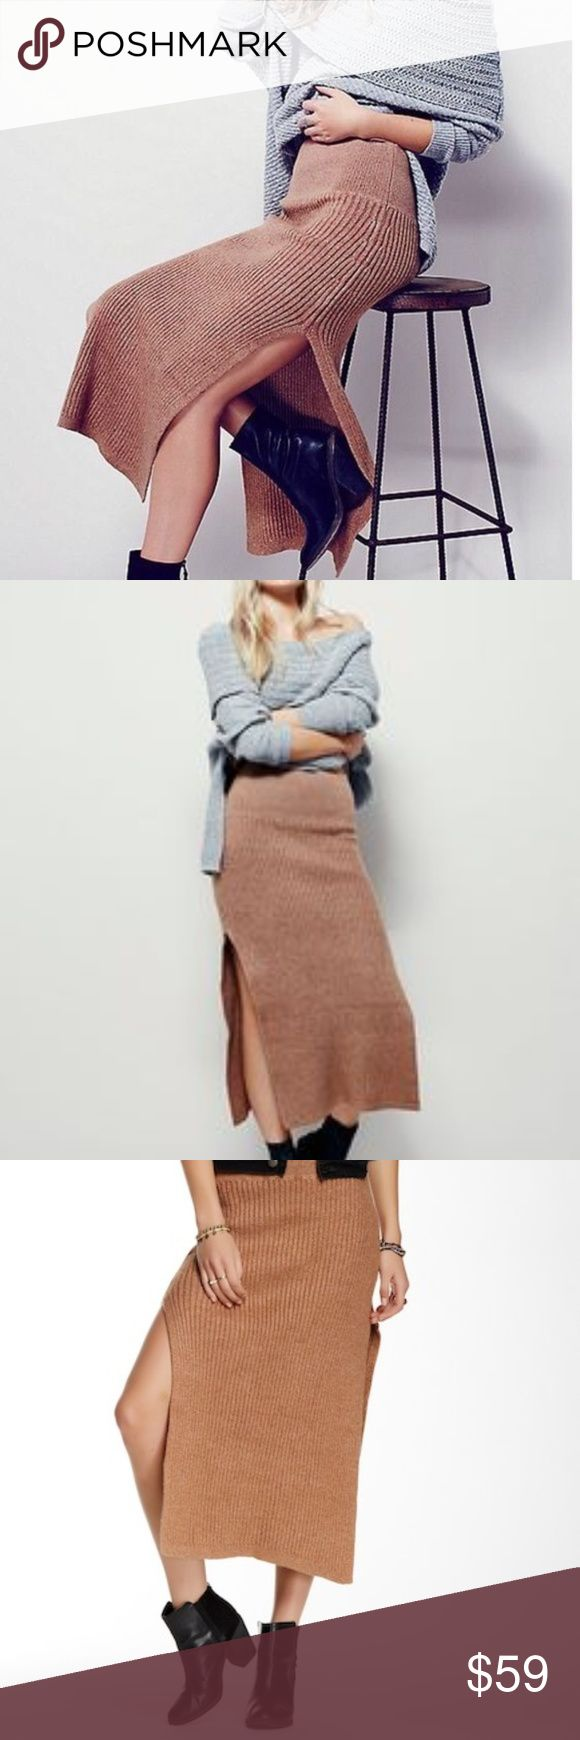 """Free People Felix Stretch Ribbed Midi Skirt Side slits make a sultry statement on a rib knit sweater skirt. - Elasticized waist - Side slits - Ribbed construction - Approx. 16"""" shortest length, 34"""" longest length Fiber Content: 30% cotton, 25% acrylic, 23% nylon, 14% rayon, 8% linen Hand wash cold Size XS, but will fit size 4-6  Very good used condition. Free People Skirts Midi"""